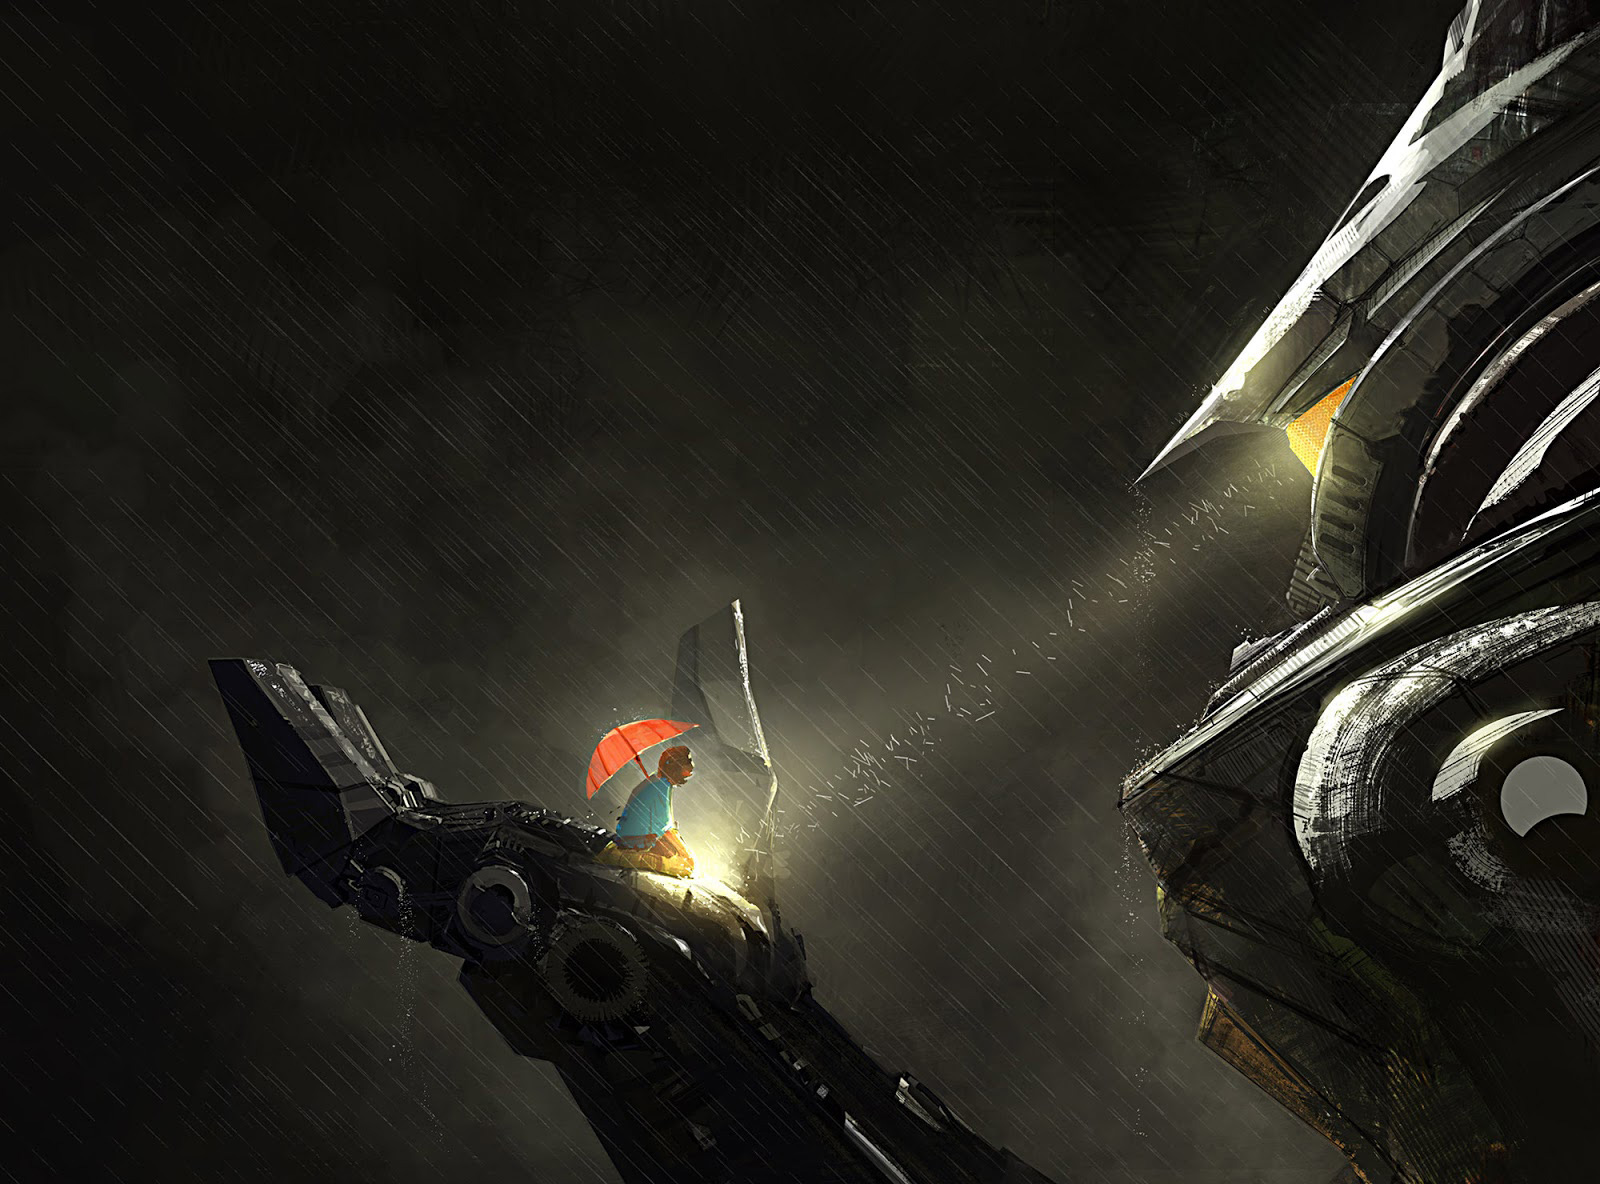 Emmanuel_Shiu_Pacific_Rim_Fan_Art_01